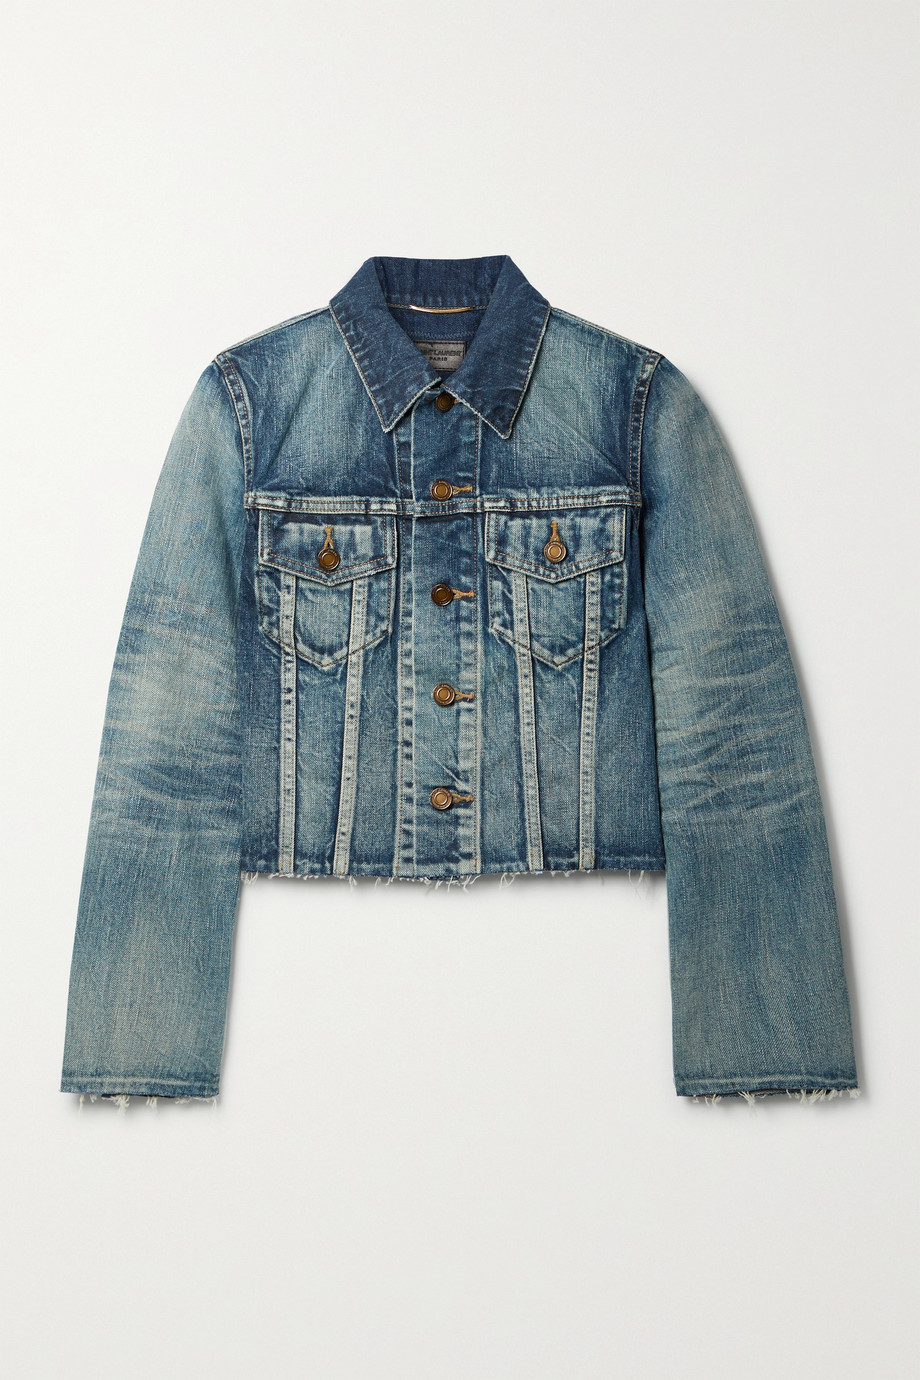 SAINT LAURENT Verkürzte Jeansjacke in Distressed-Optik